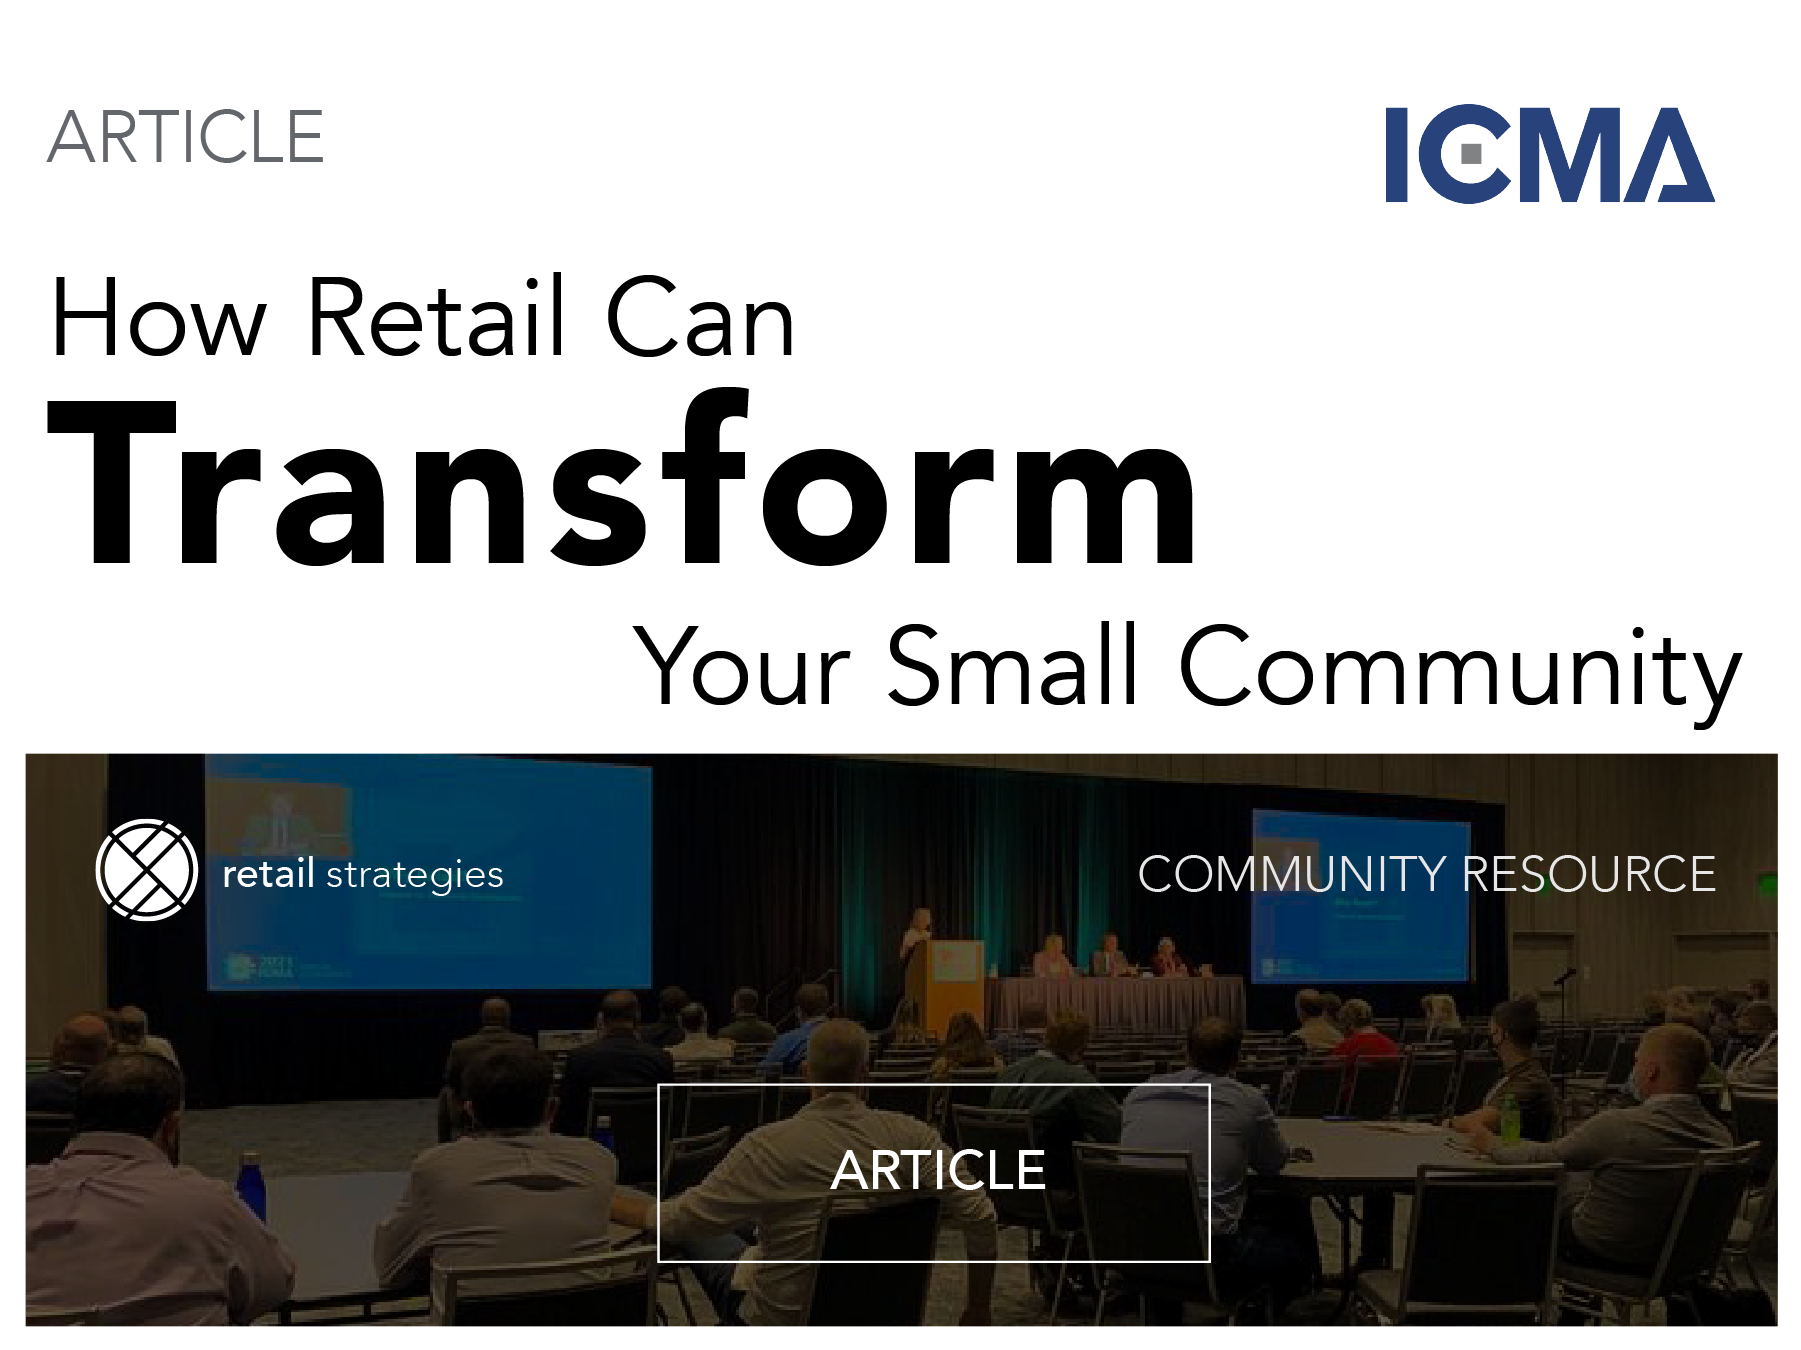 ICMA + how retail can transform your small community